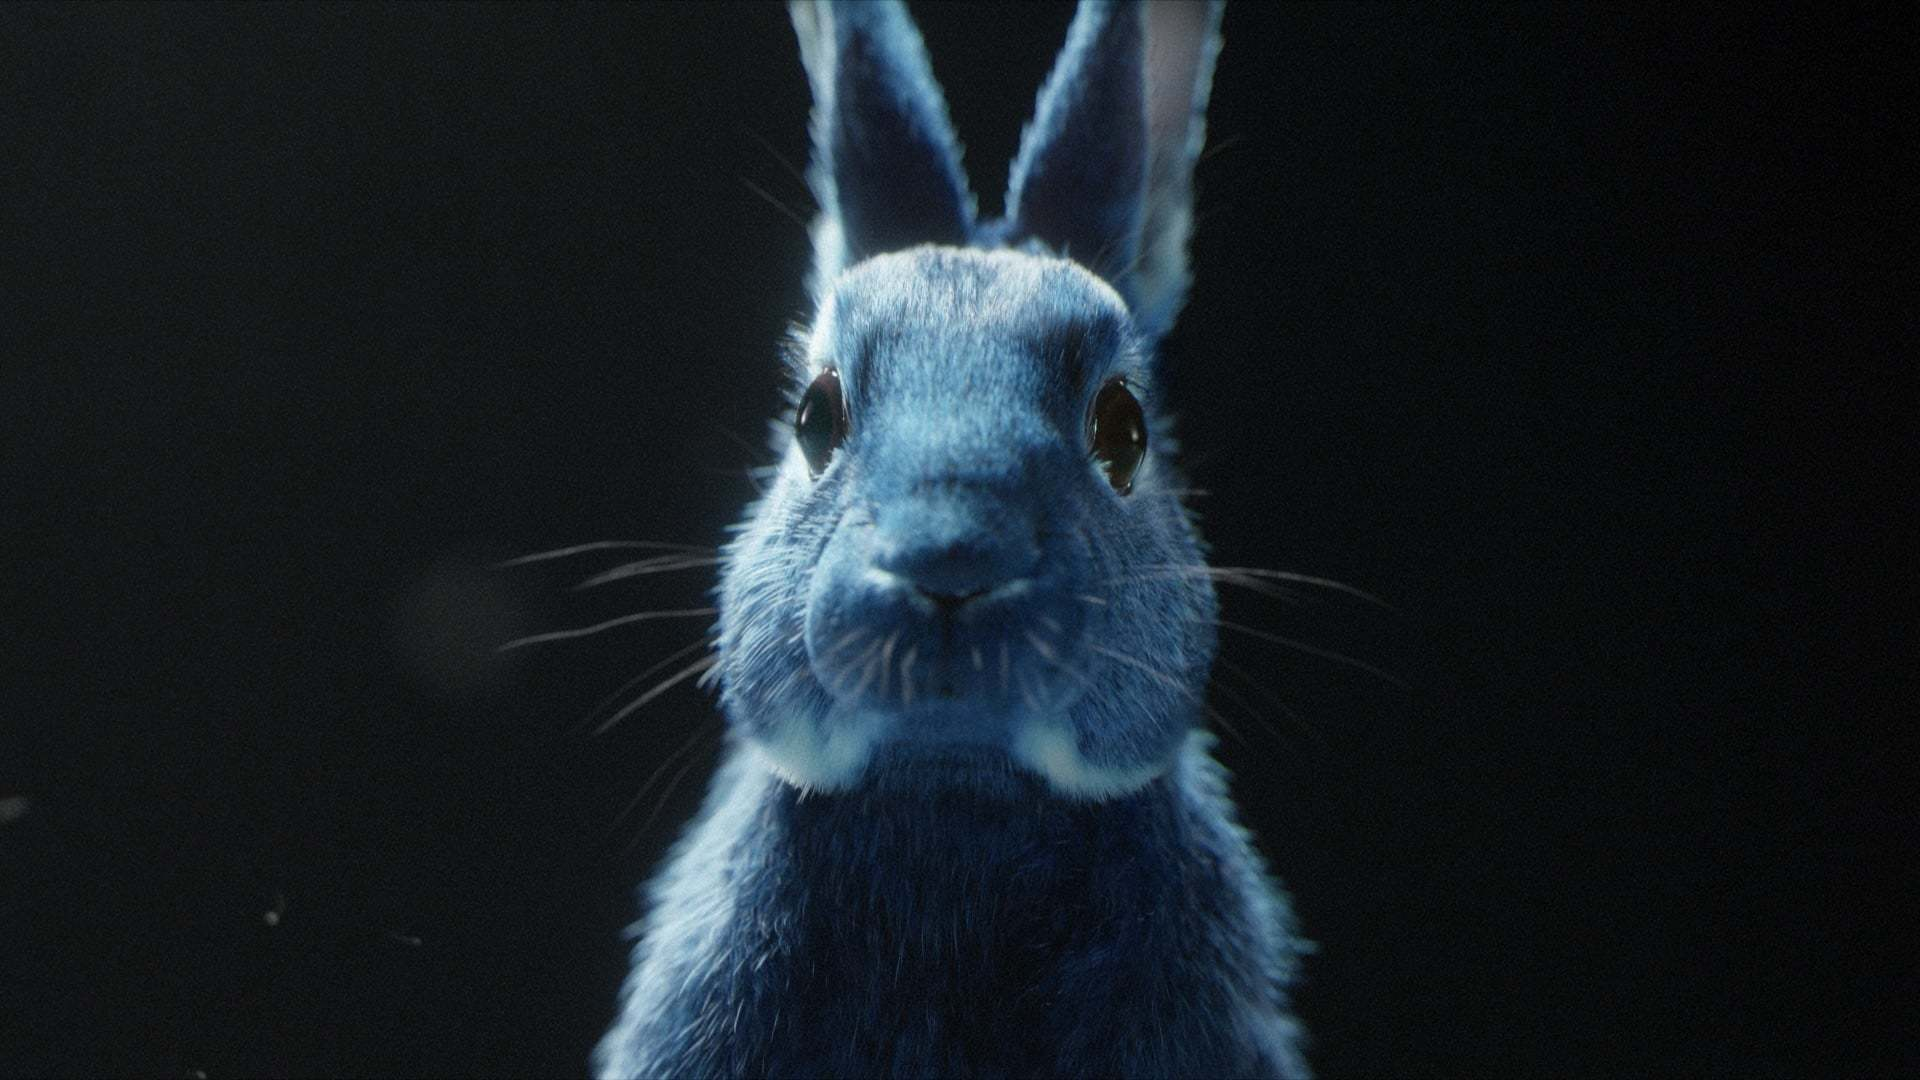 tavşan_o2_vccp_follow the rabbit_ingiltere_bigumigu_7